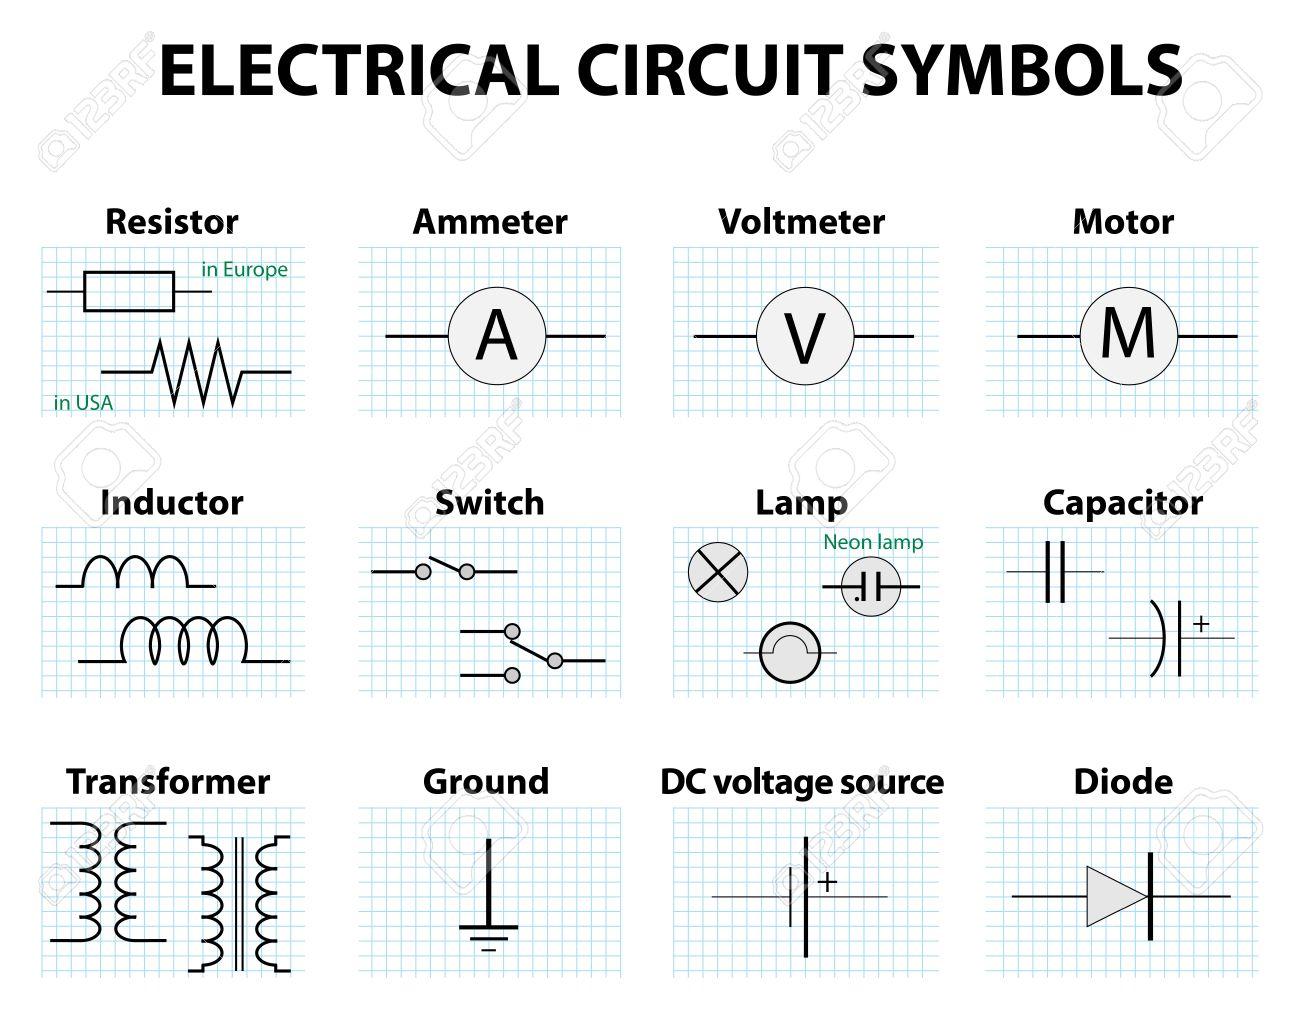 electronic symbol electric circuit symbol element set pictogram rh 123rf com 12V Electrical Symbols Relay Relay Circuit Diagrams Practice